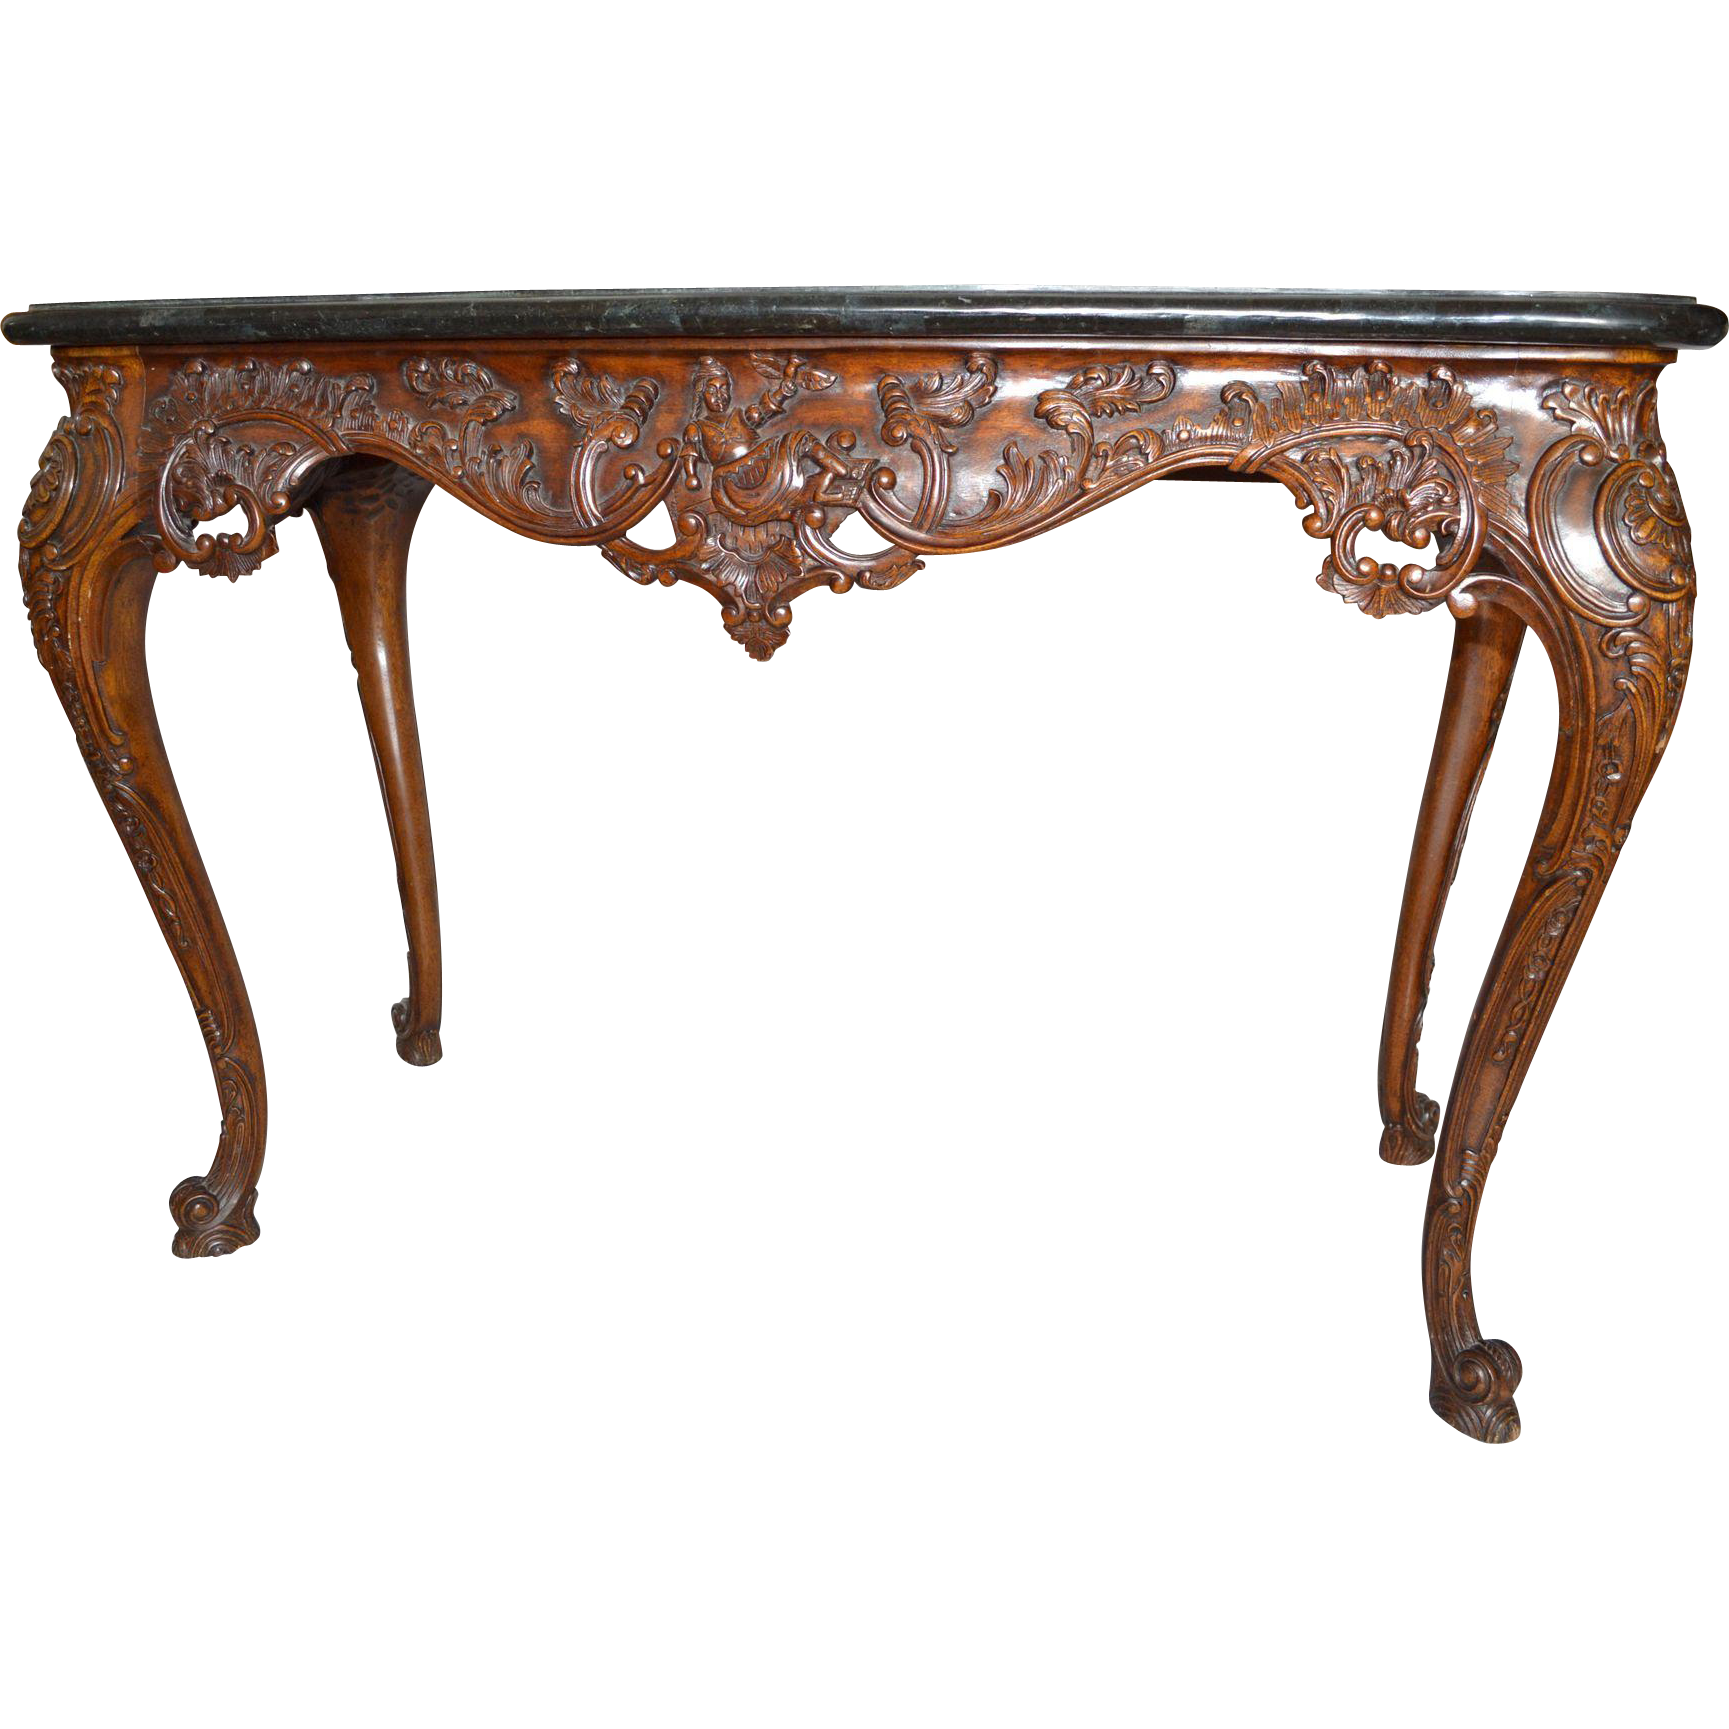 Maitland smith console table from k artstudio on ruby lane maitland smith console table geotapseo Images